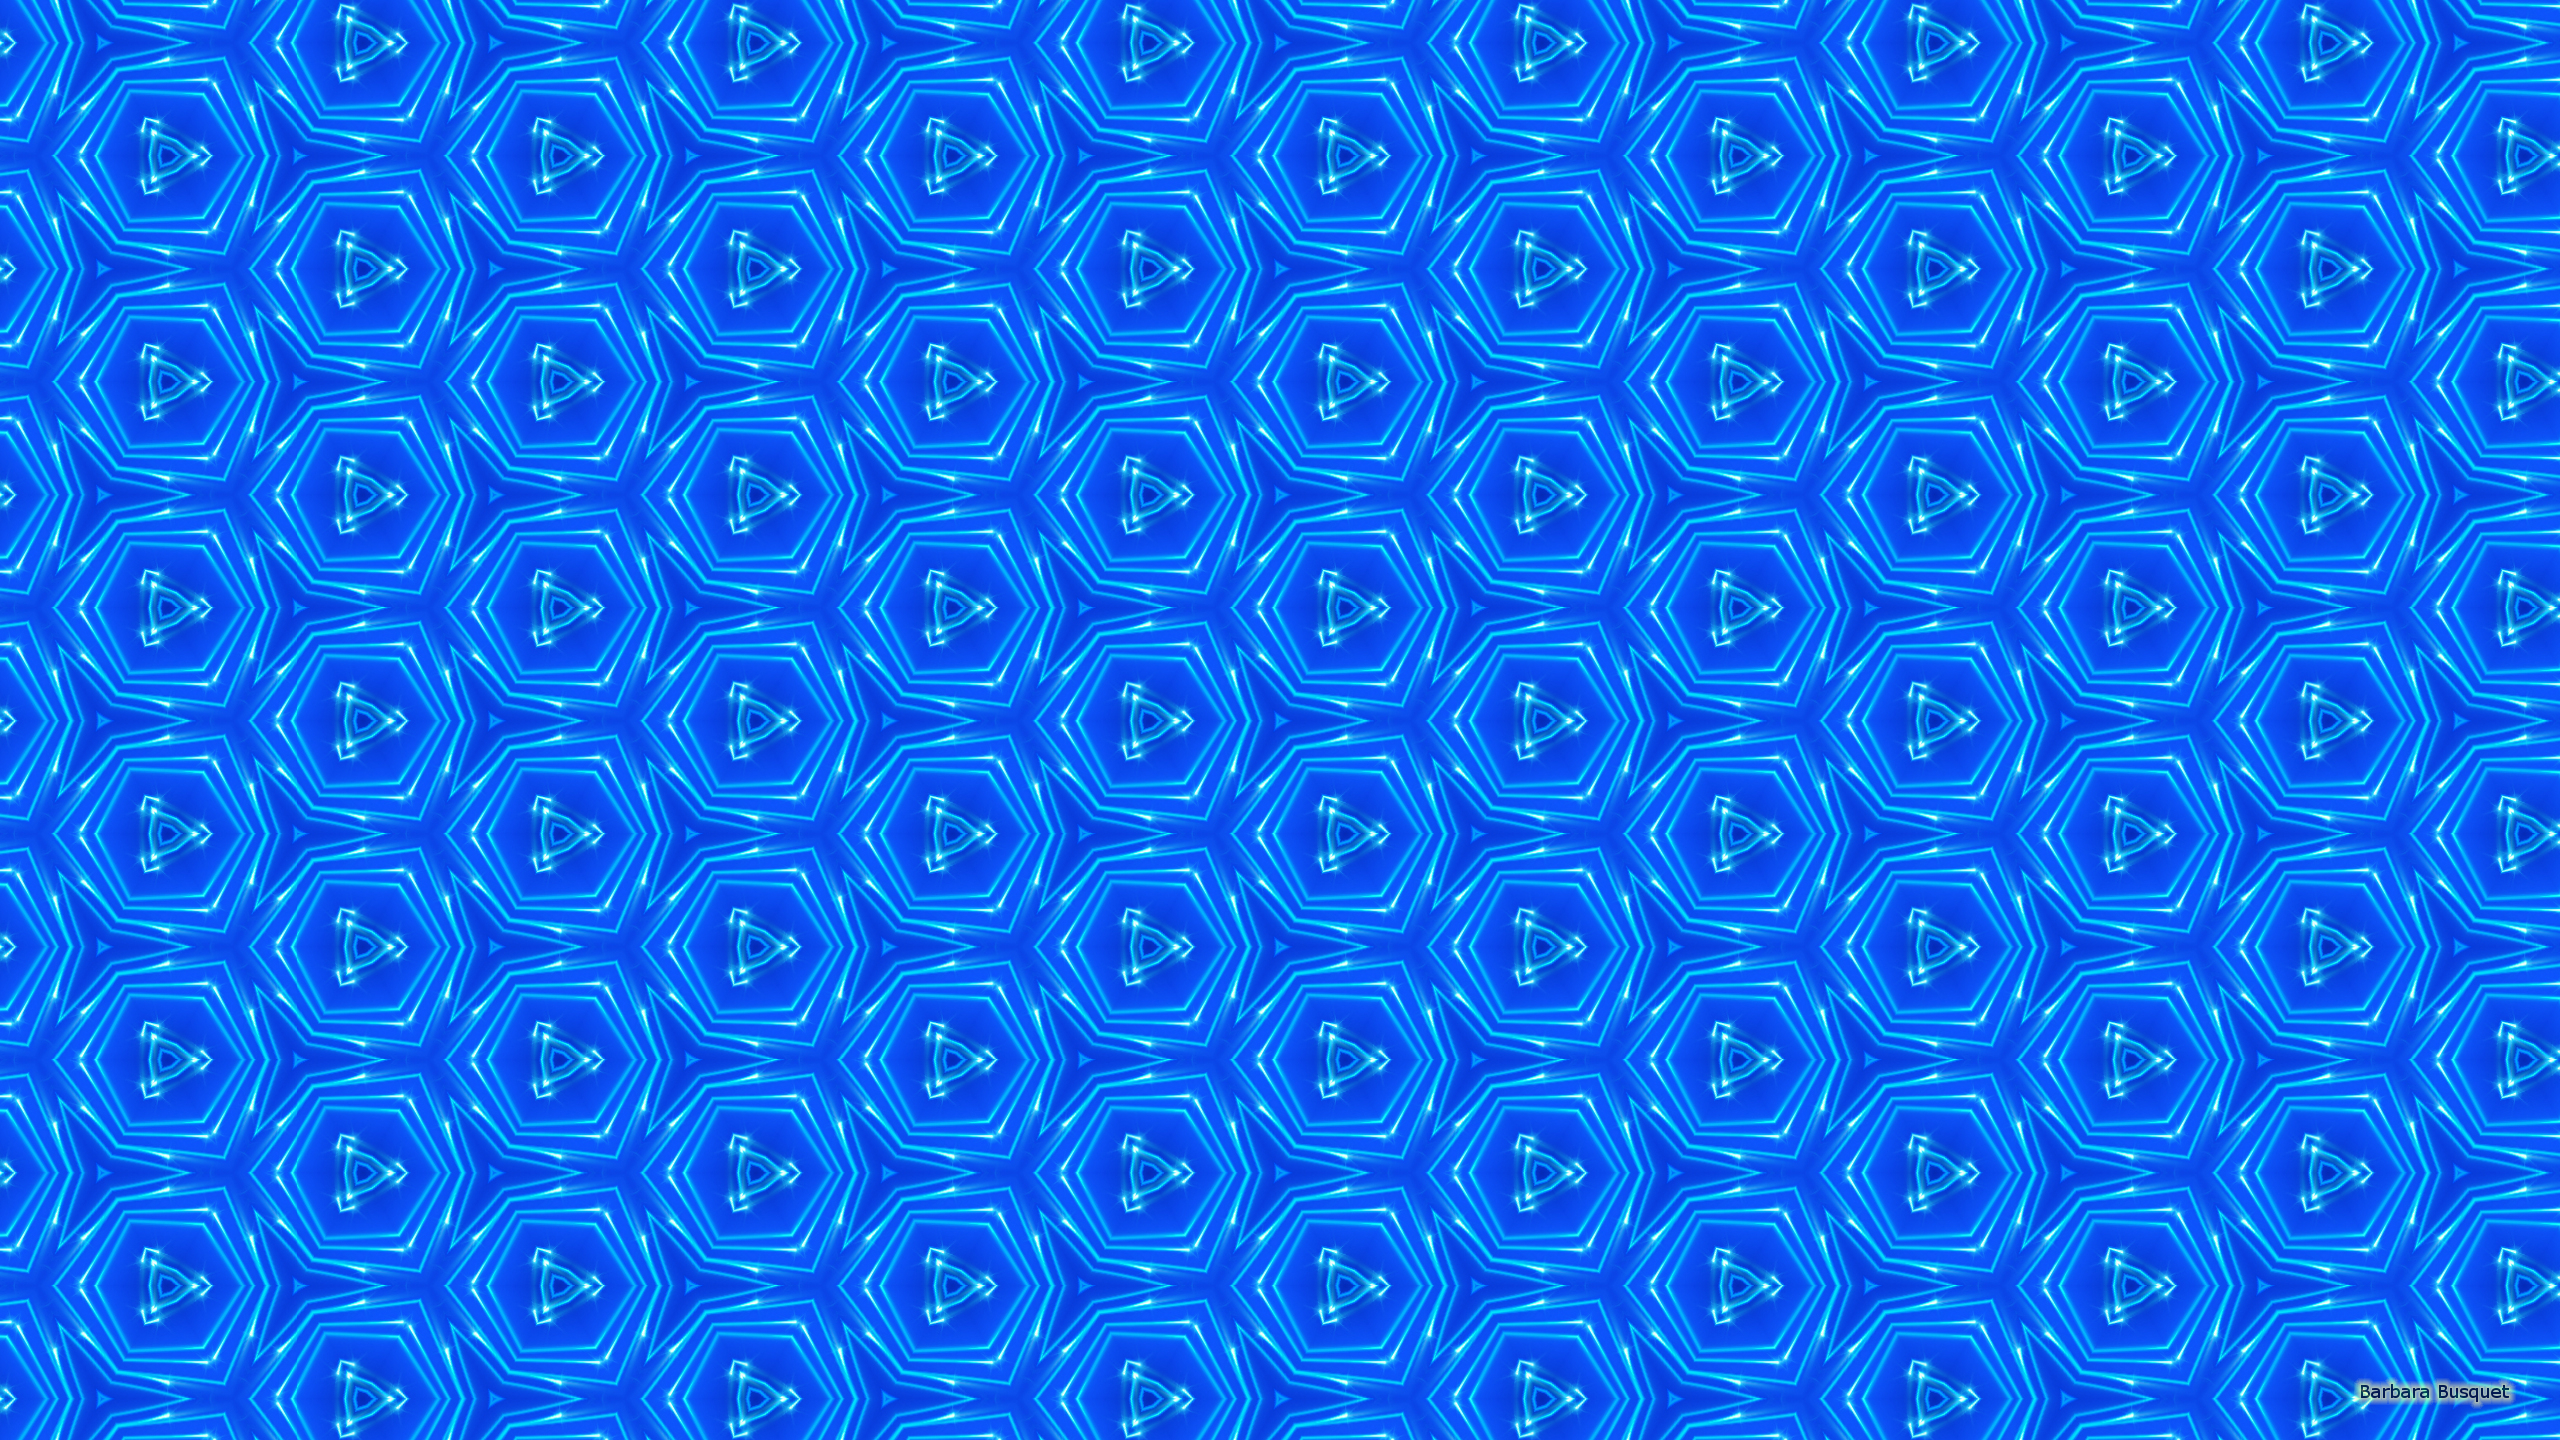 Blue pattern wallpapers | Barbara's HD Wallpapers